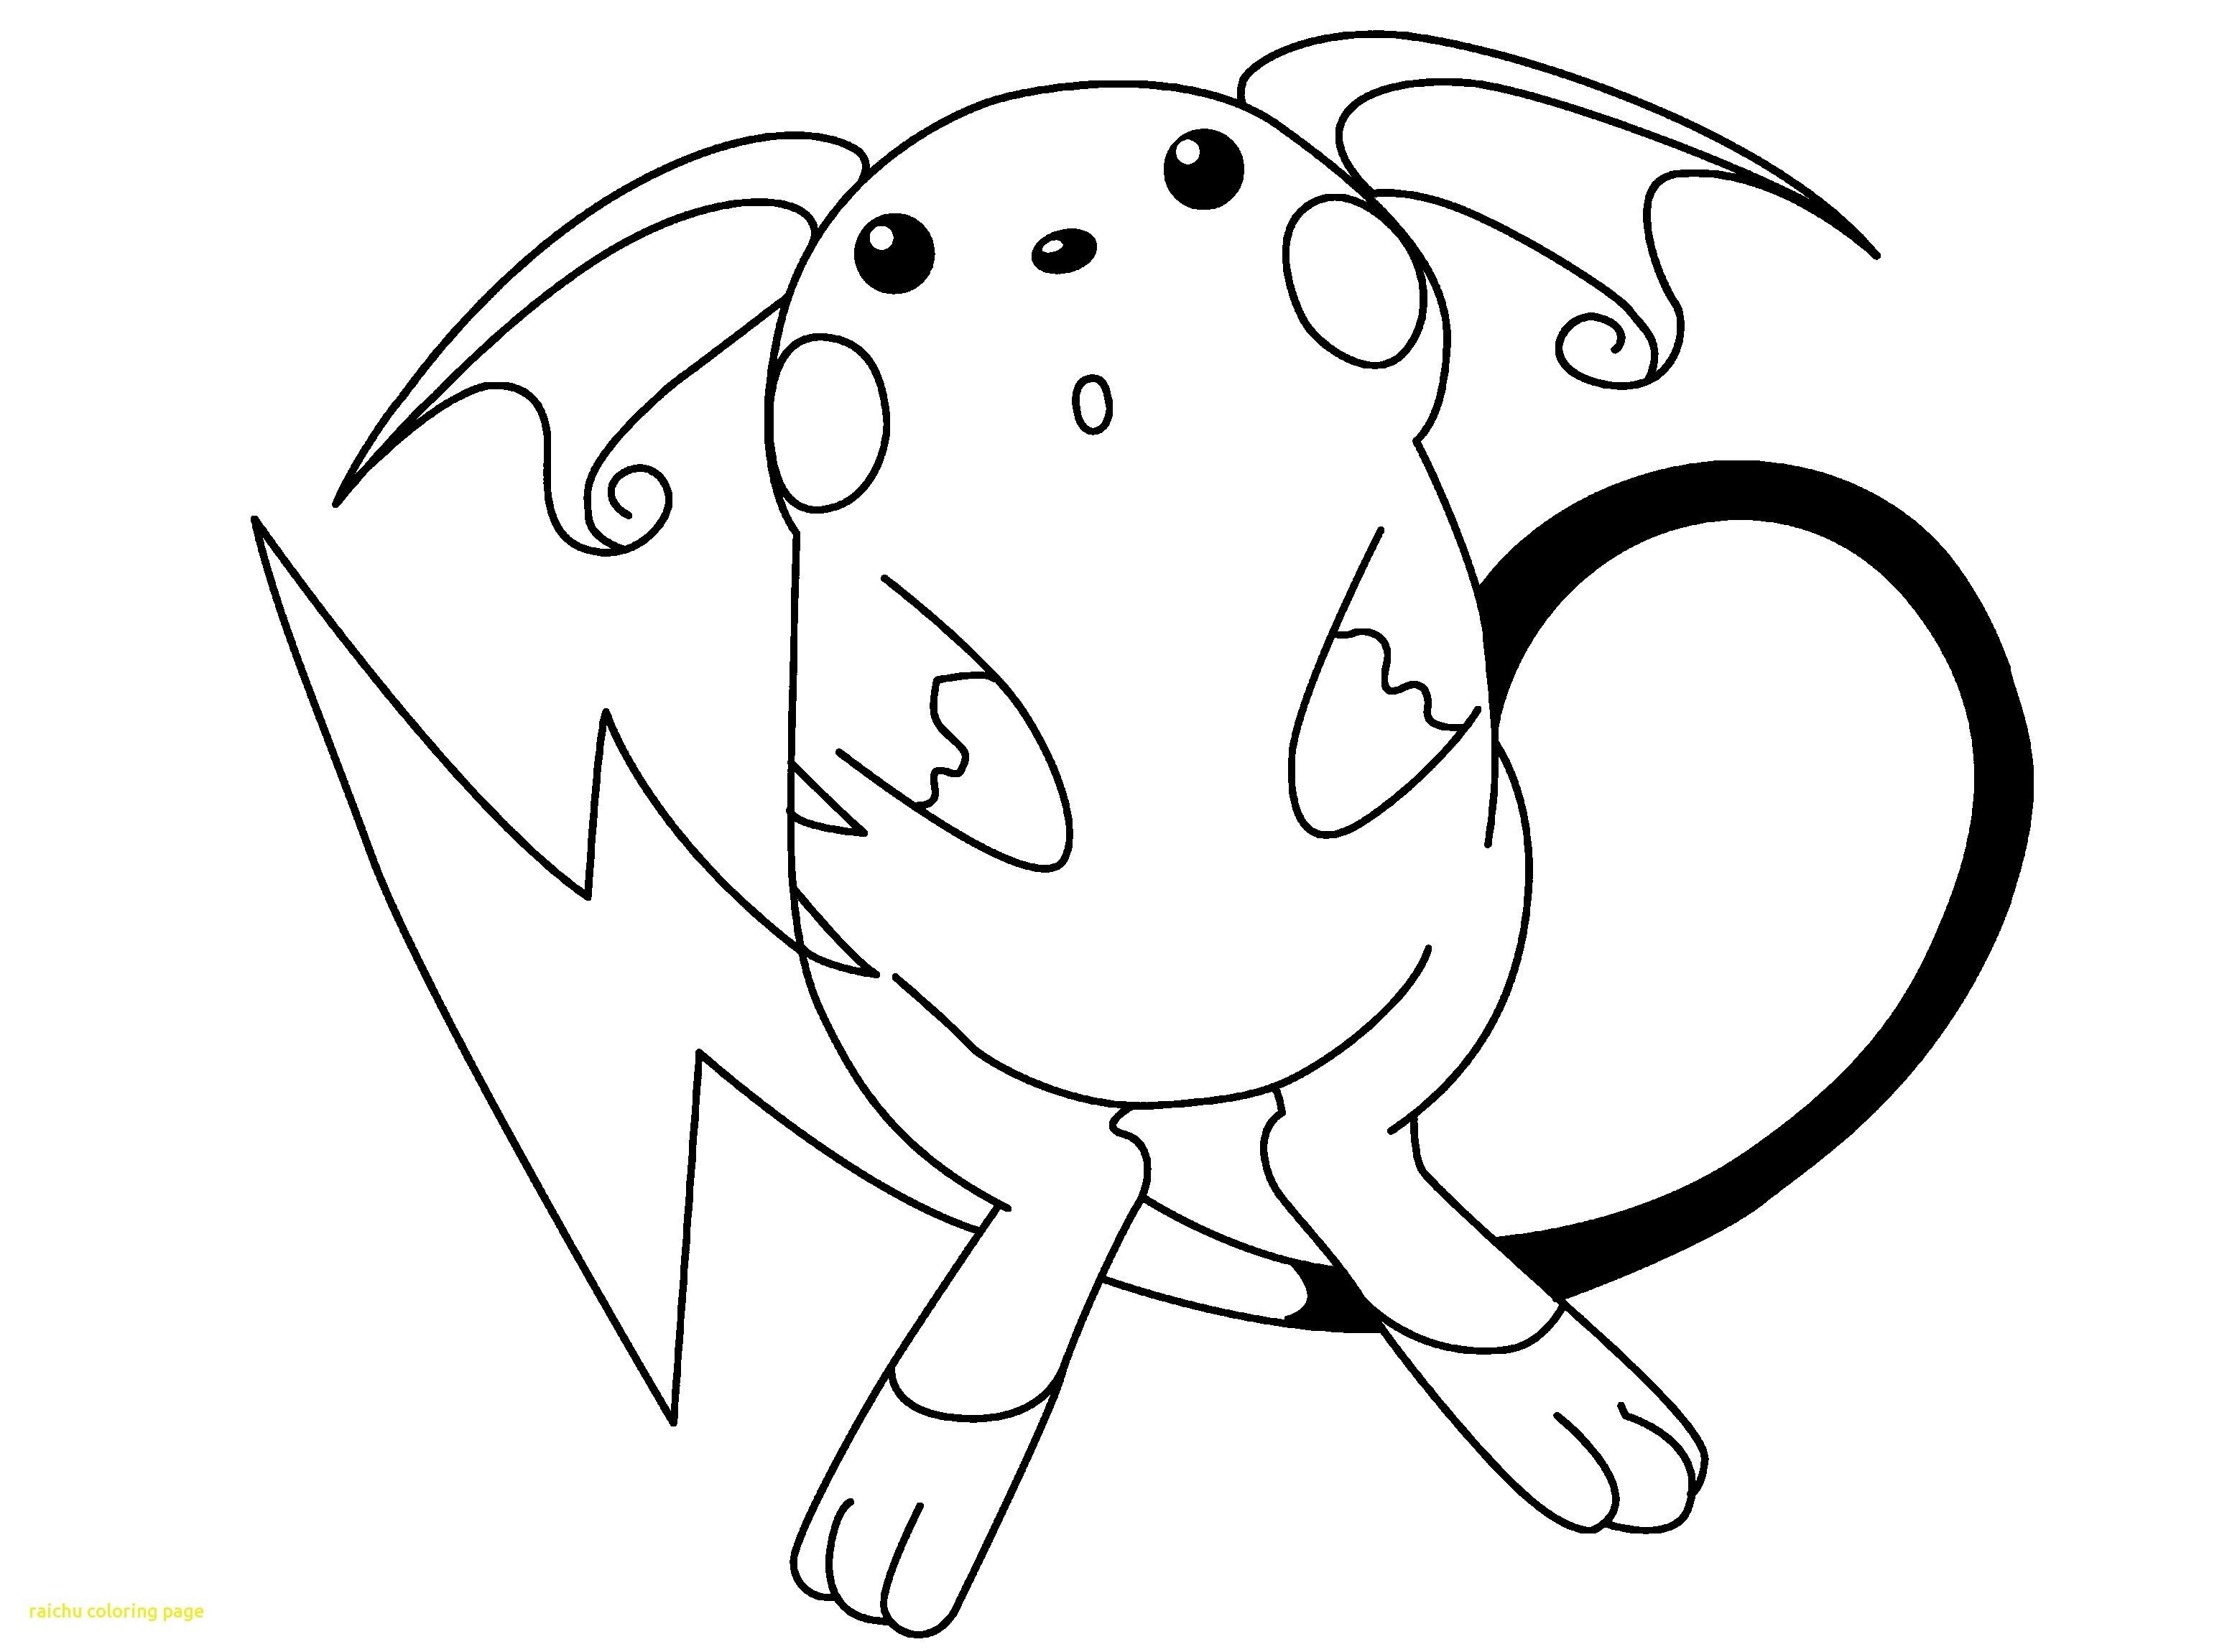 Pokemon Raichu Coloring Pages From The Thousand Images On The